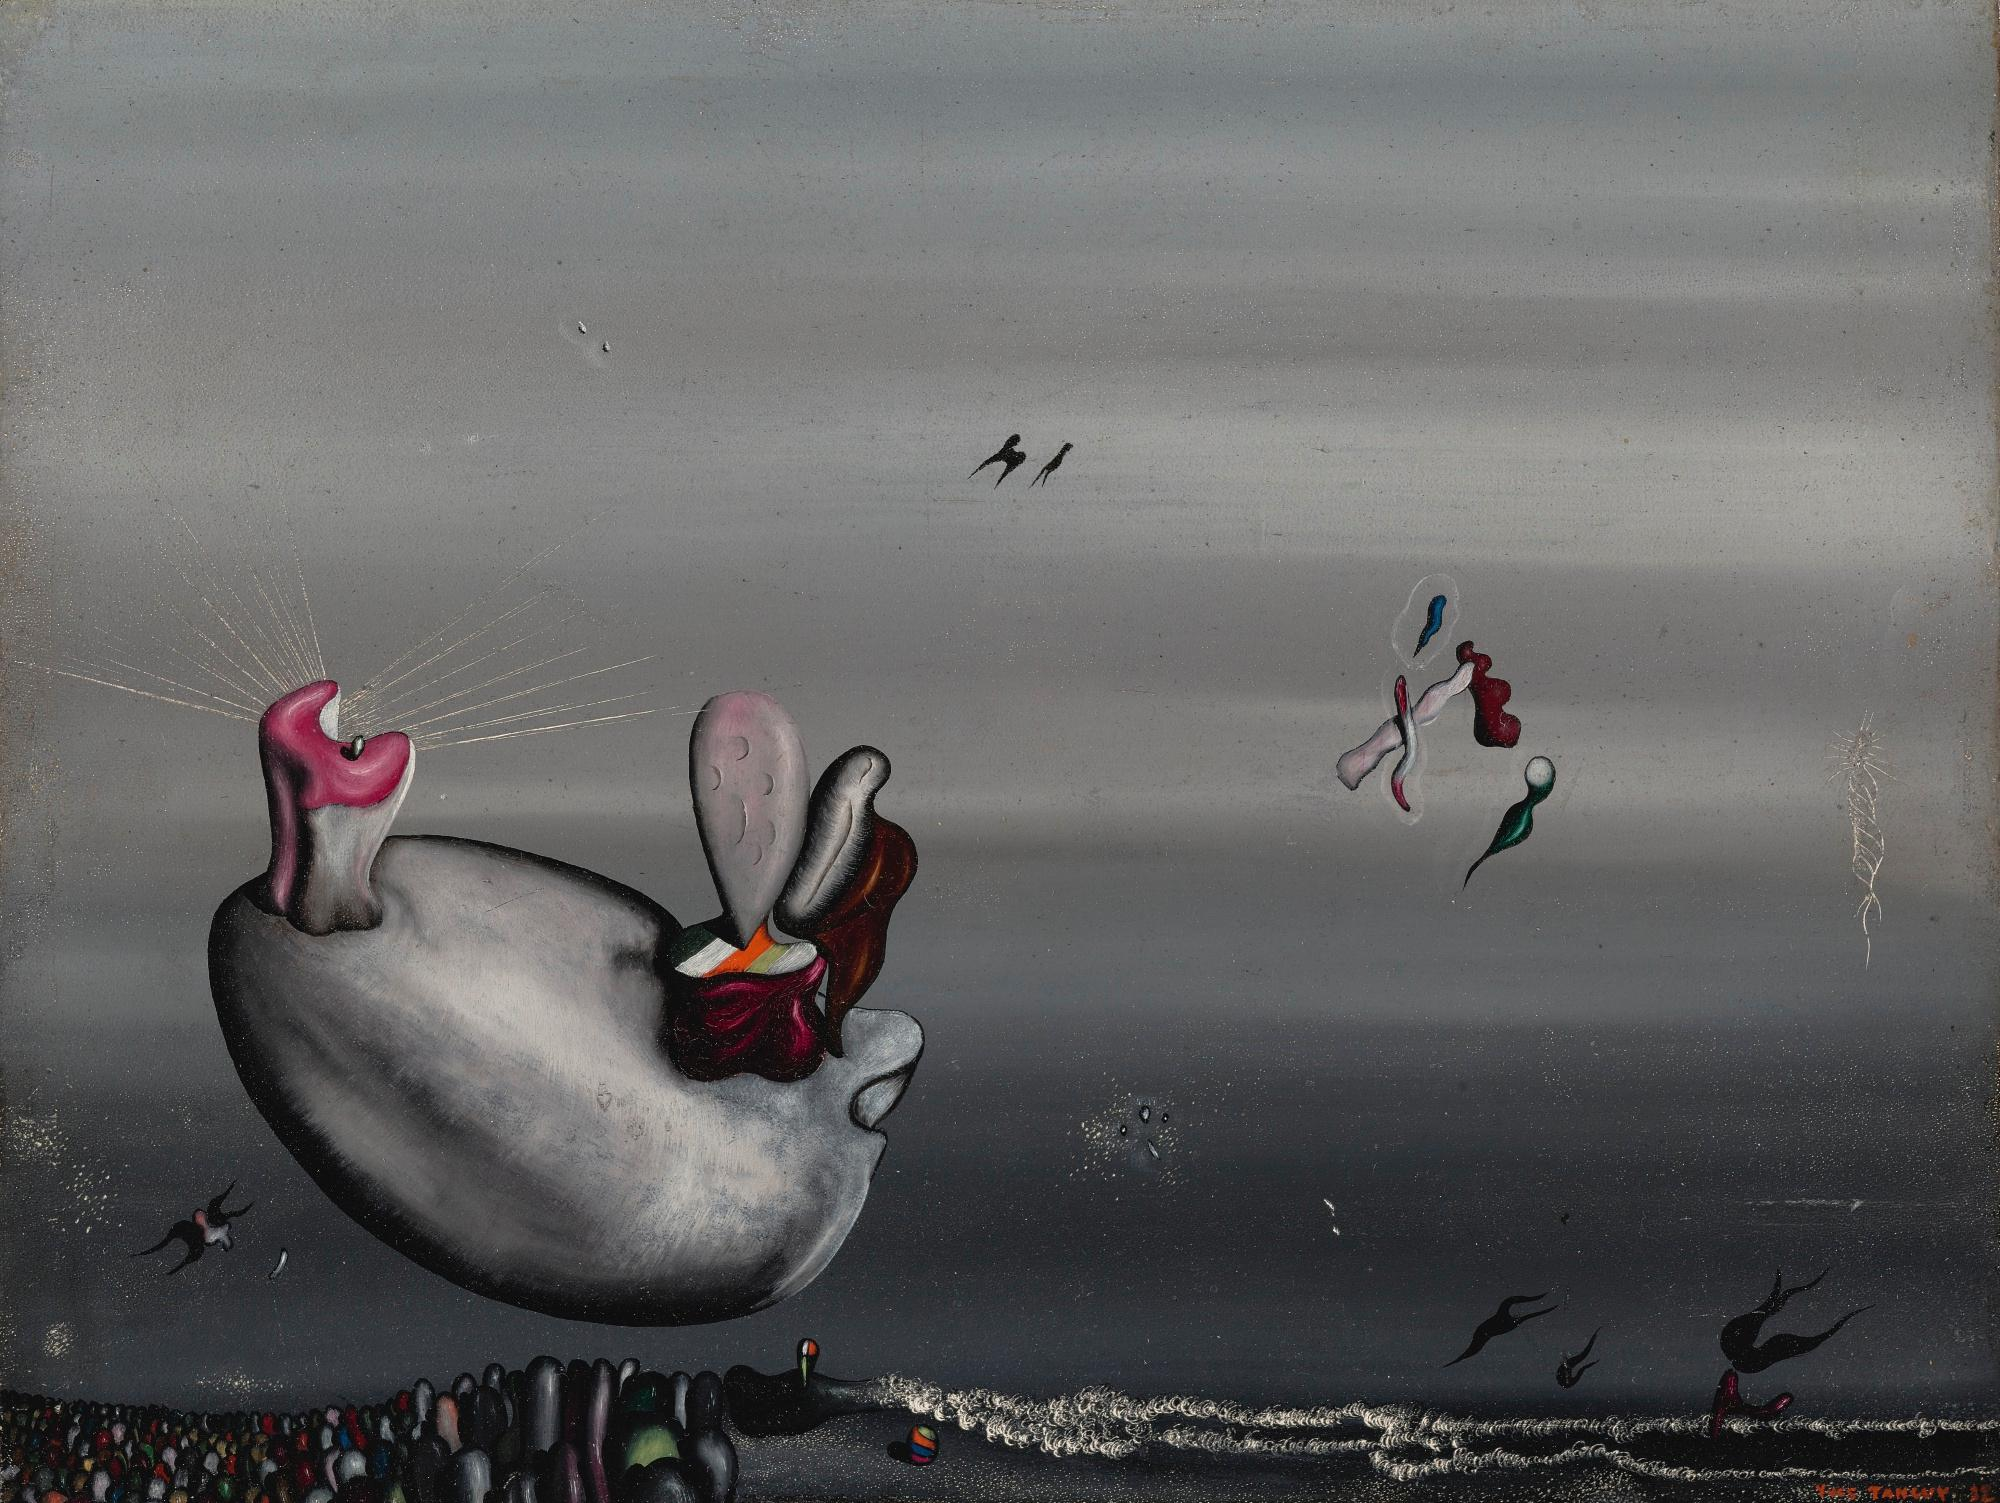 Roux En Hiver by Yves Tanguy